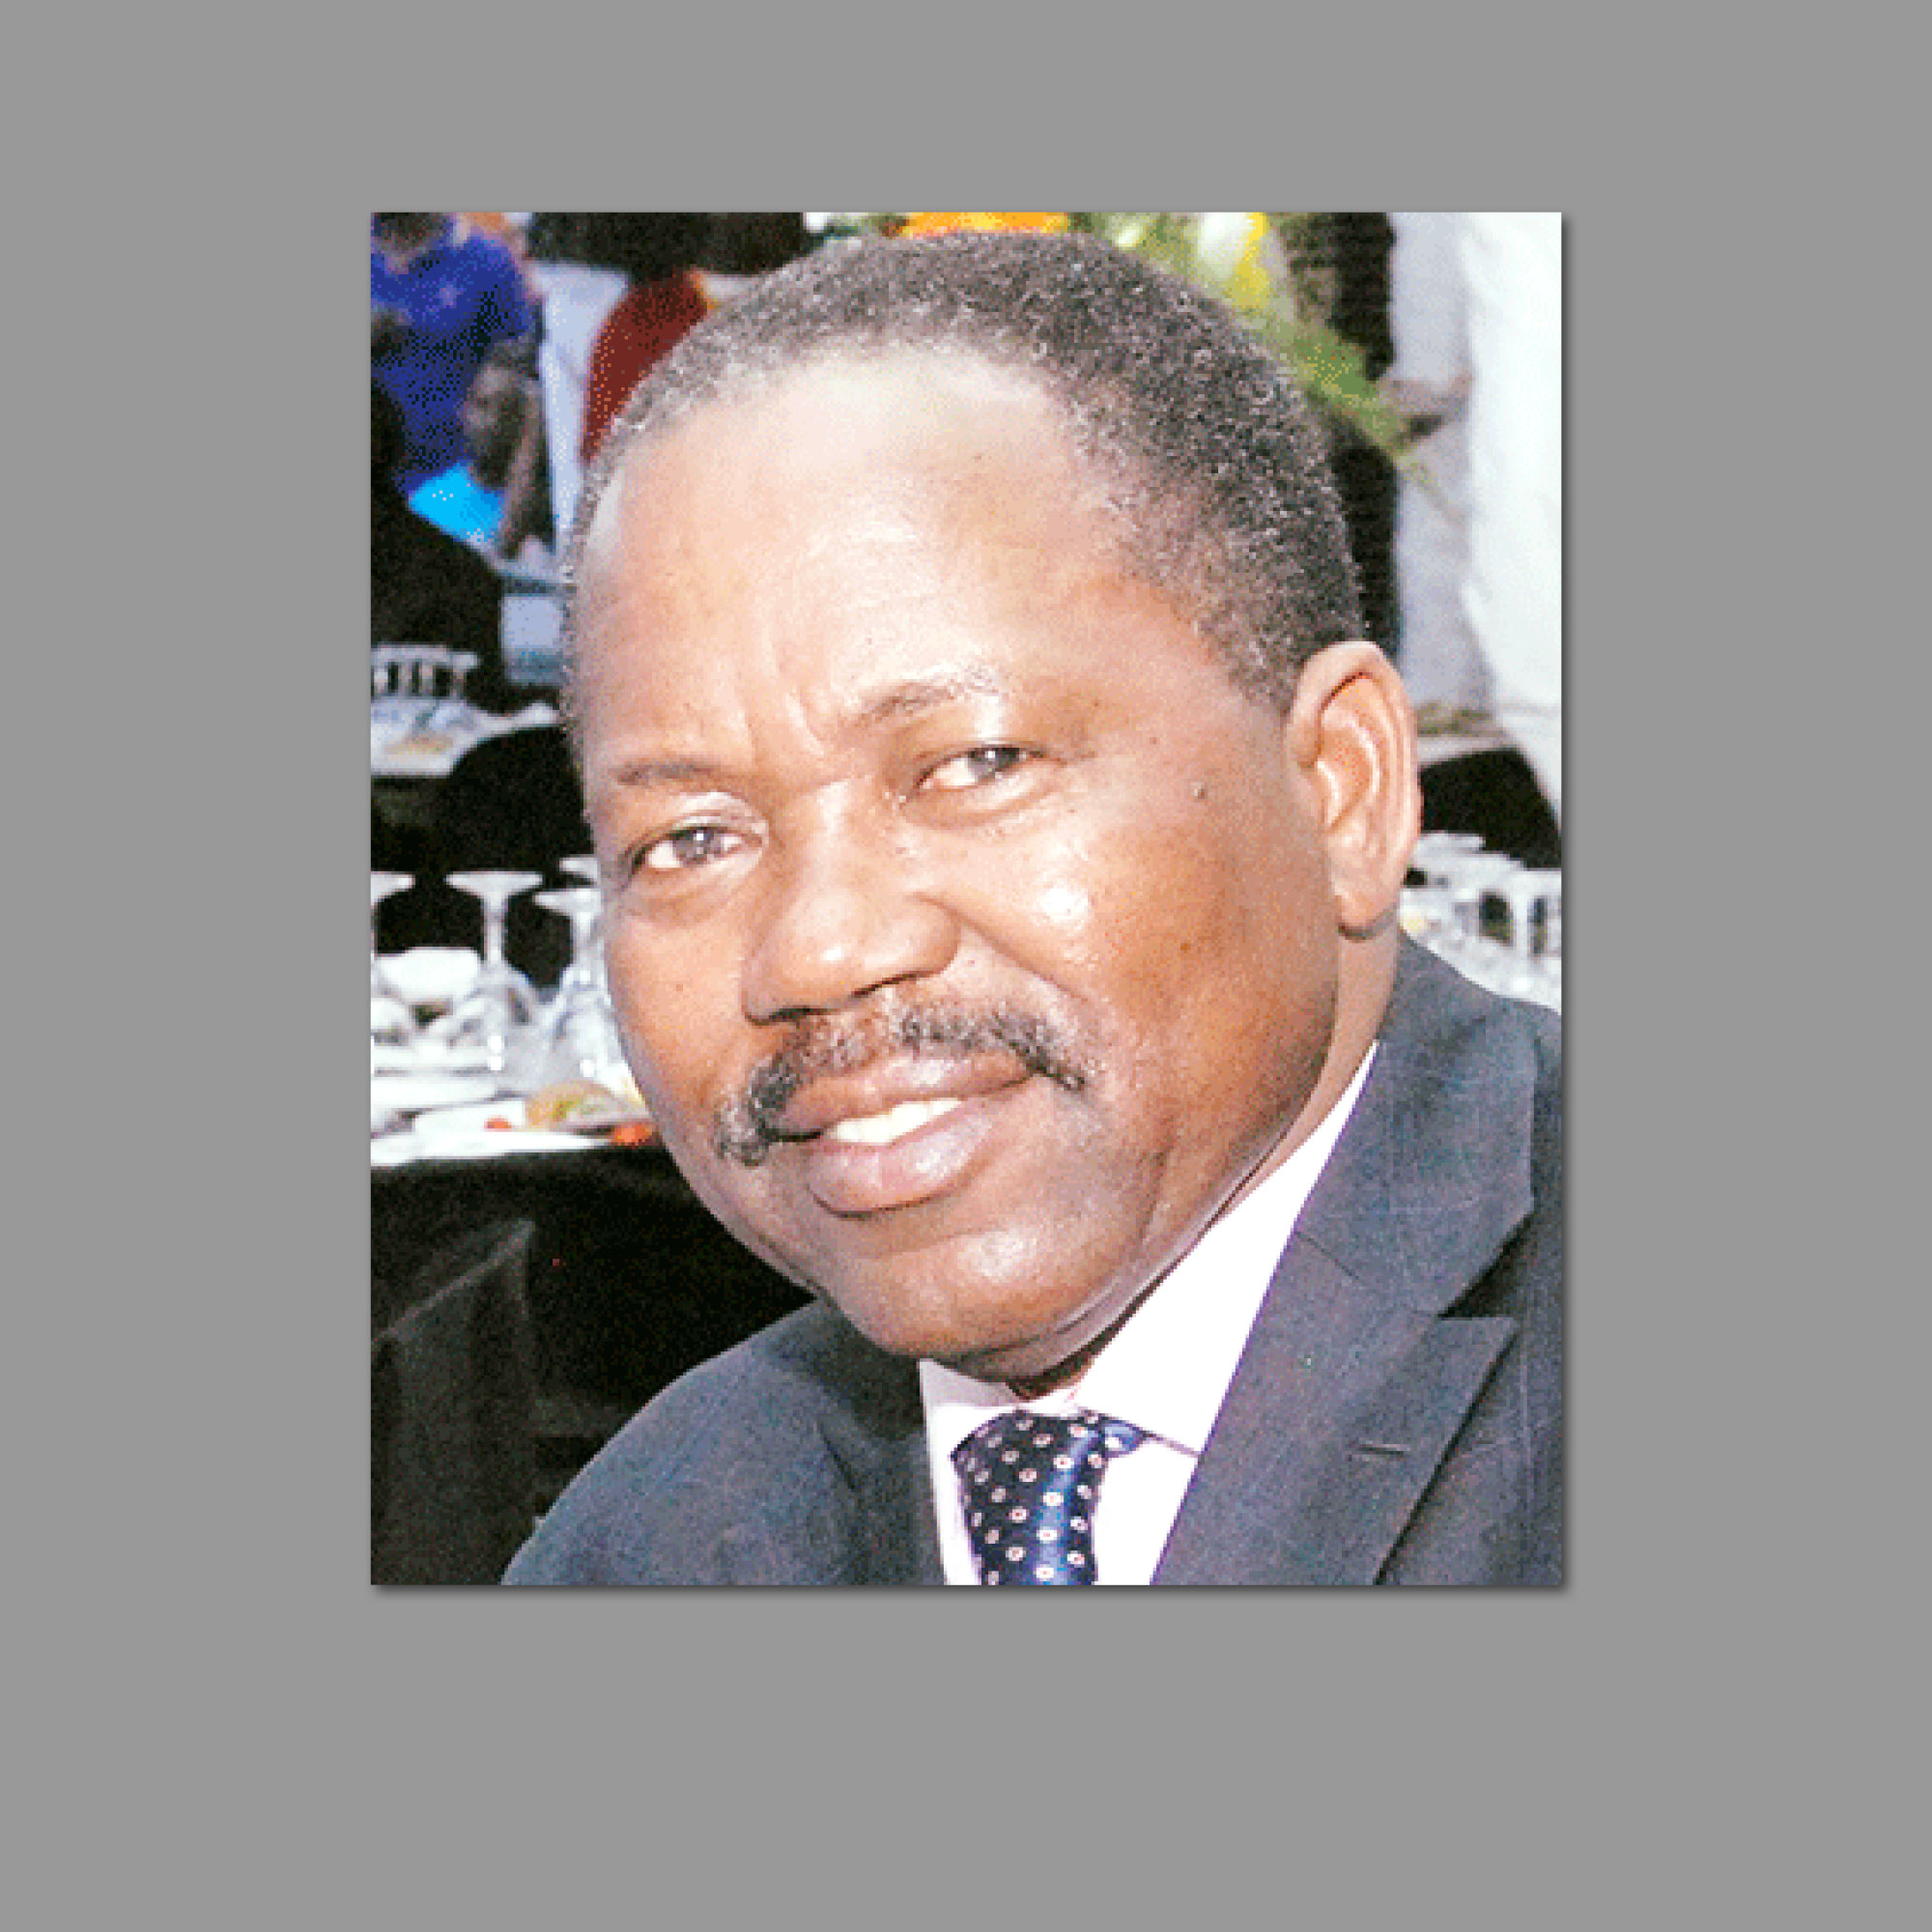 Namibia At The Forefront With Unique Digital Identity System Informante